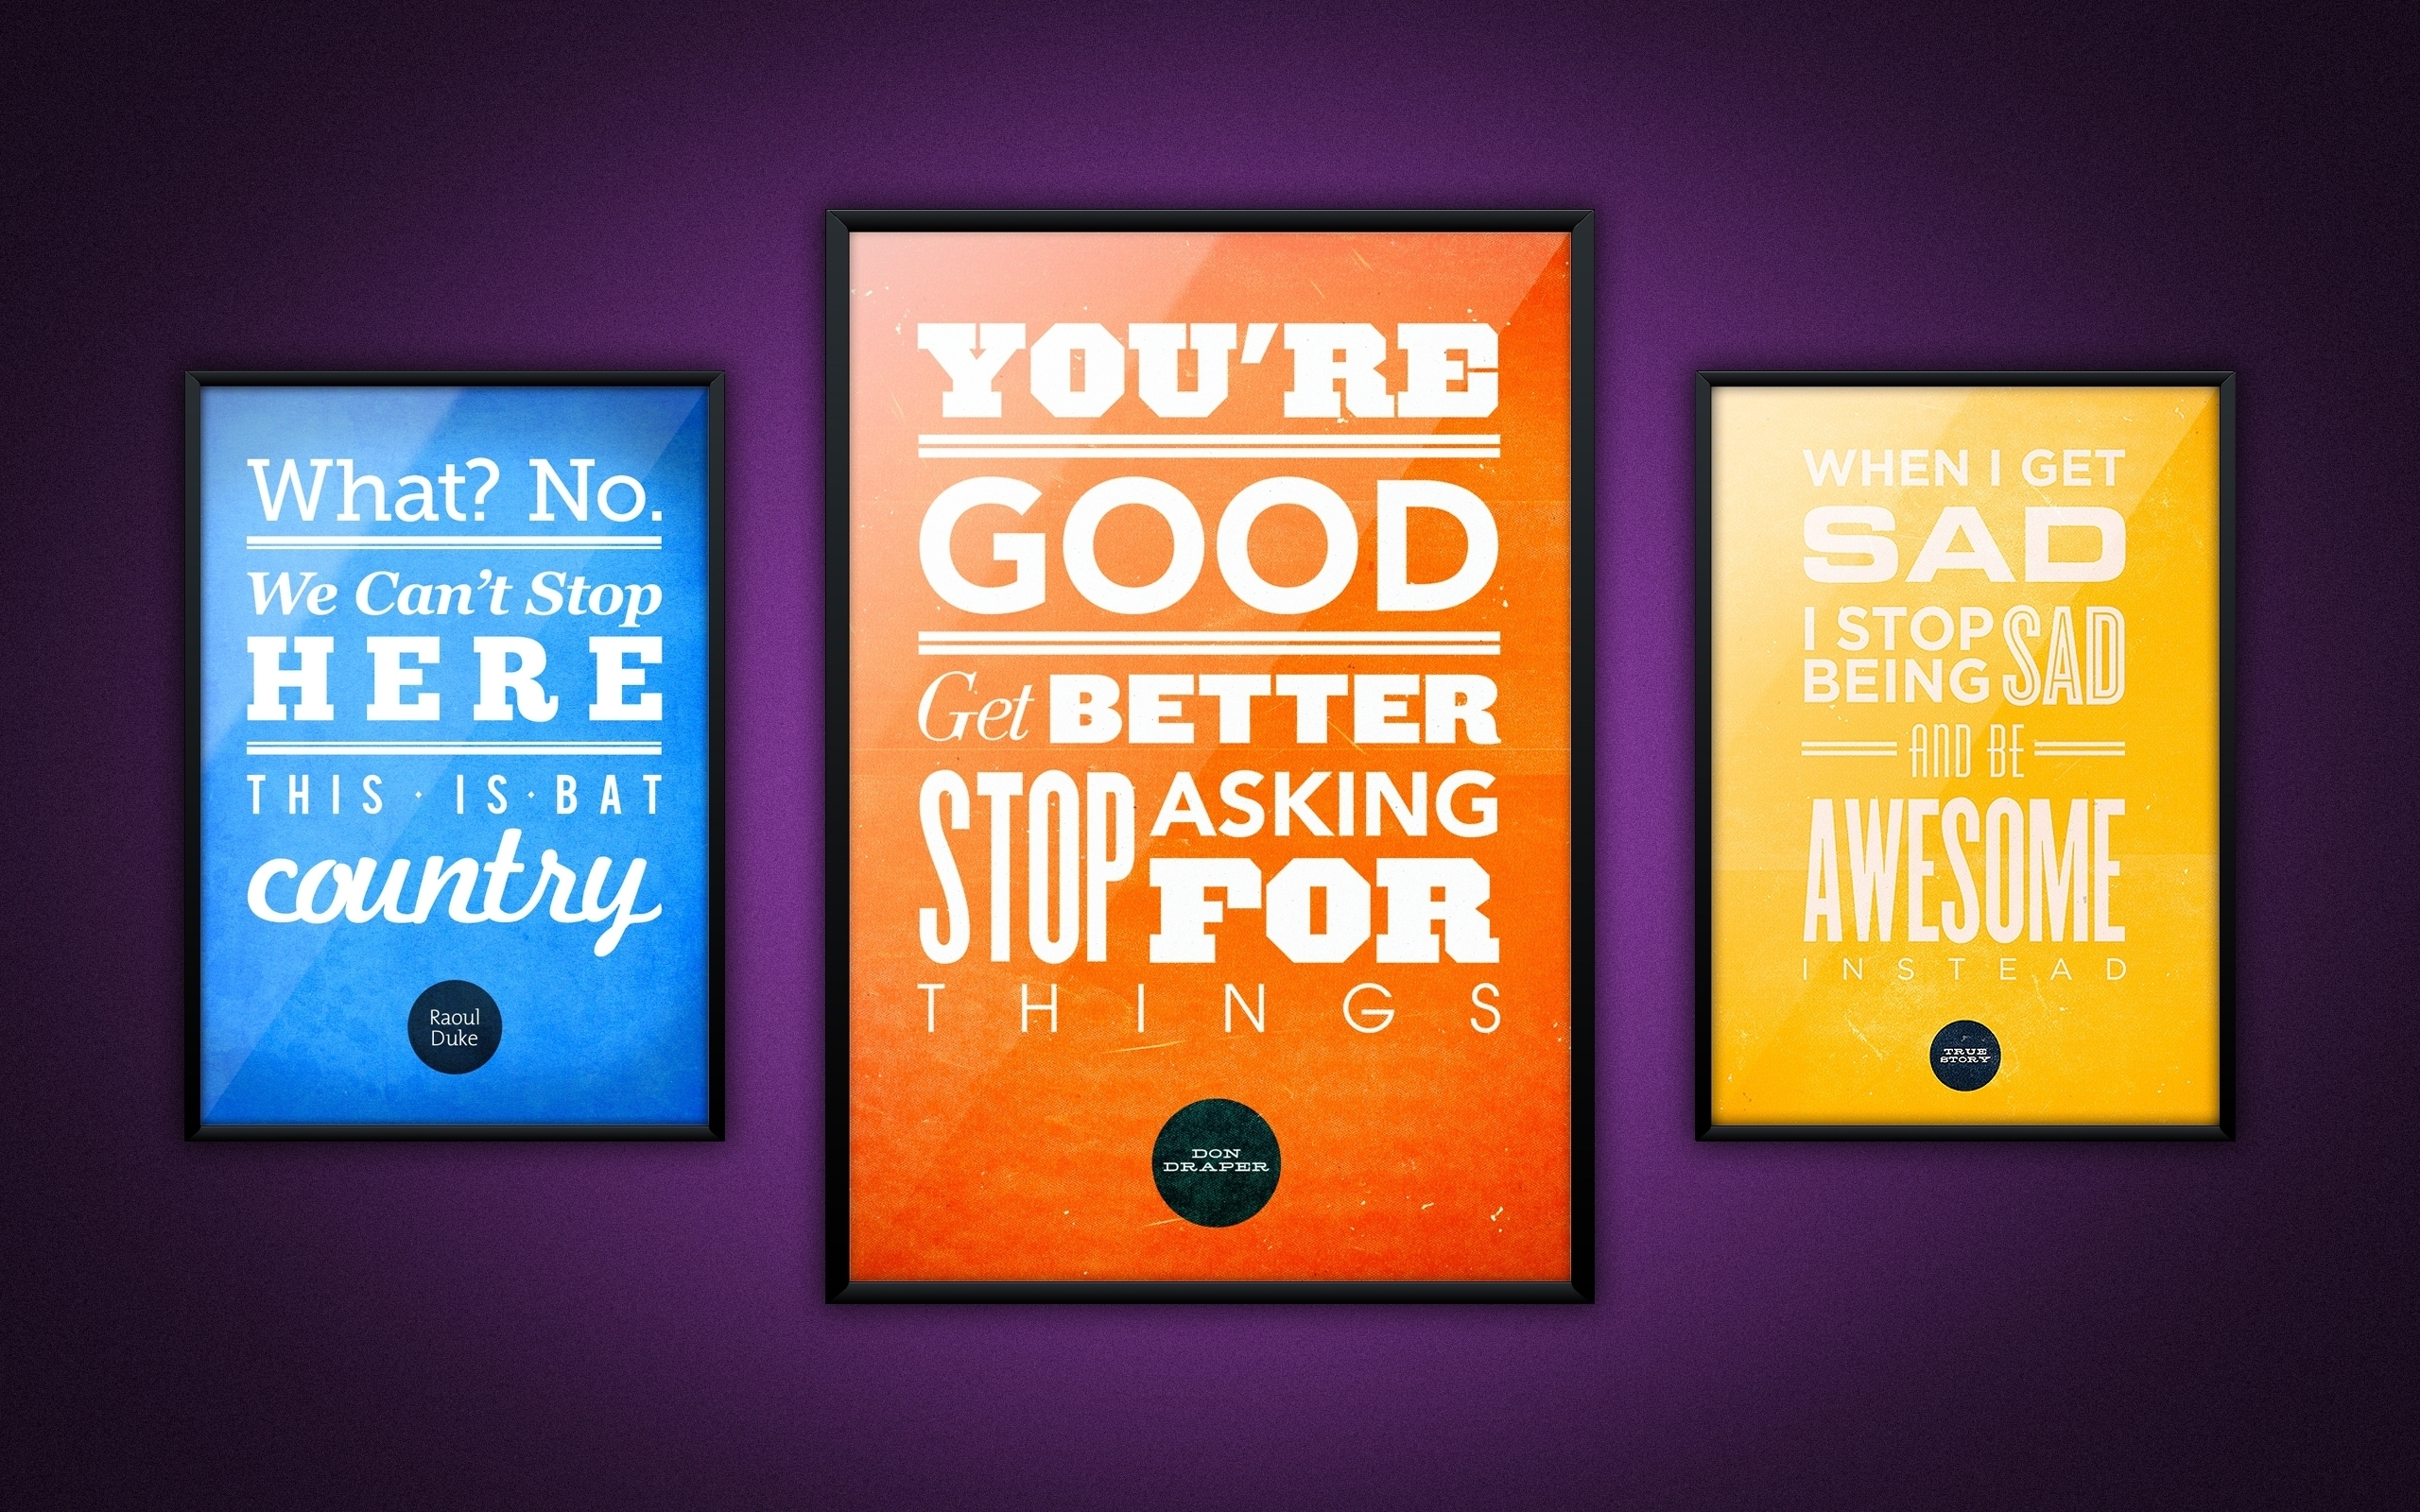 Quotes 4k Wallpapers For Your Desktop Or Mobile Screen Free And Easy To Download